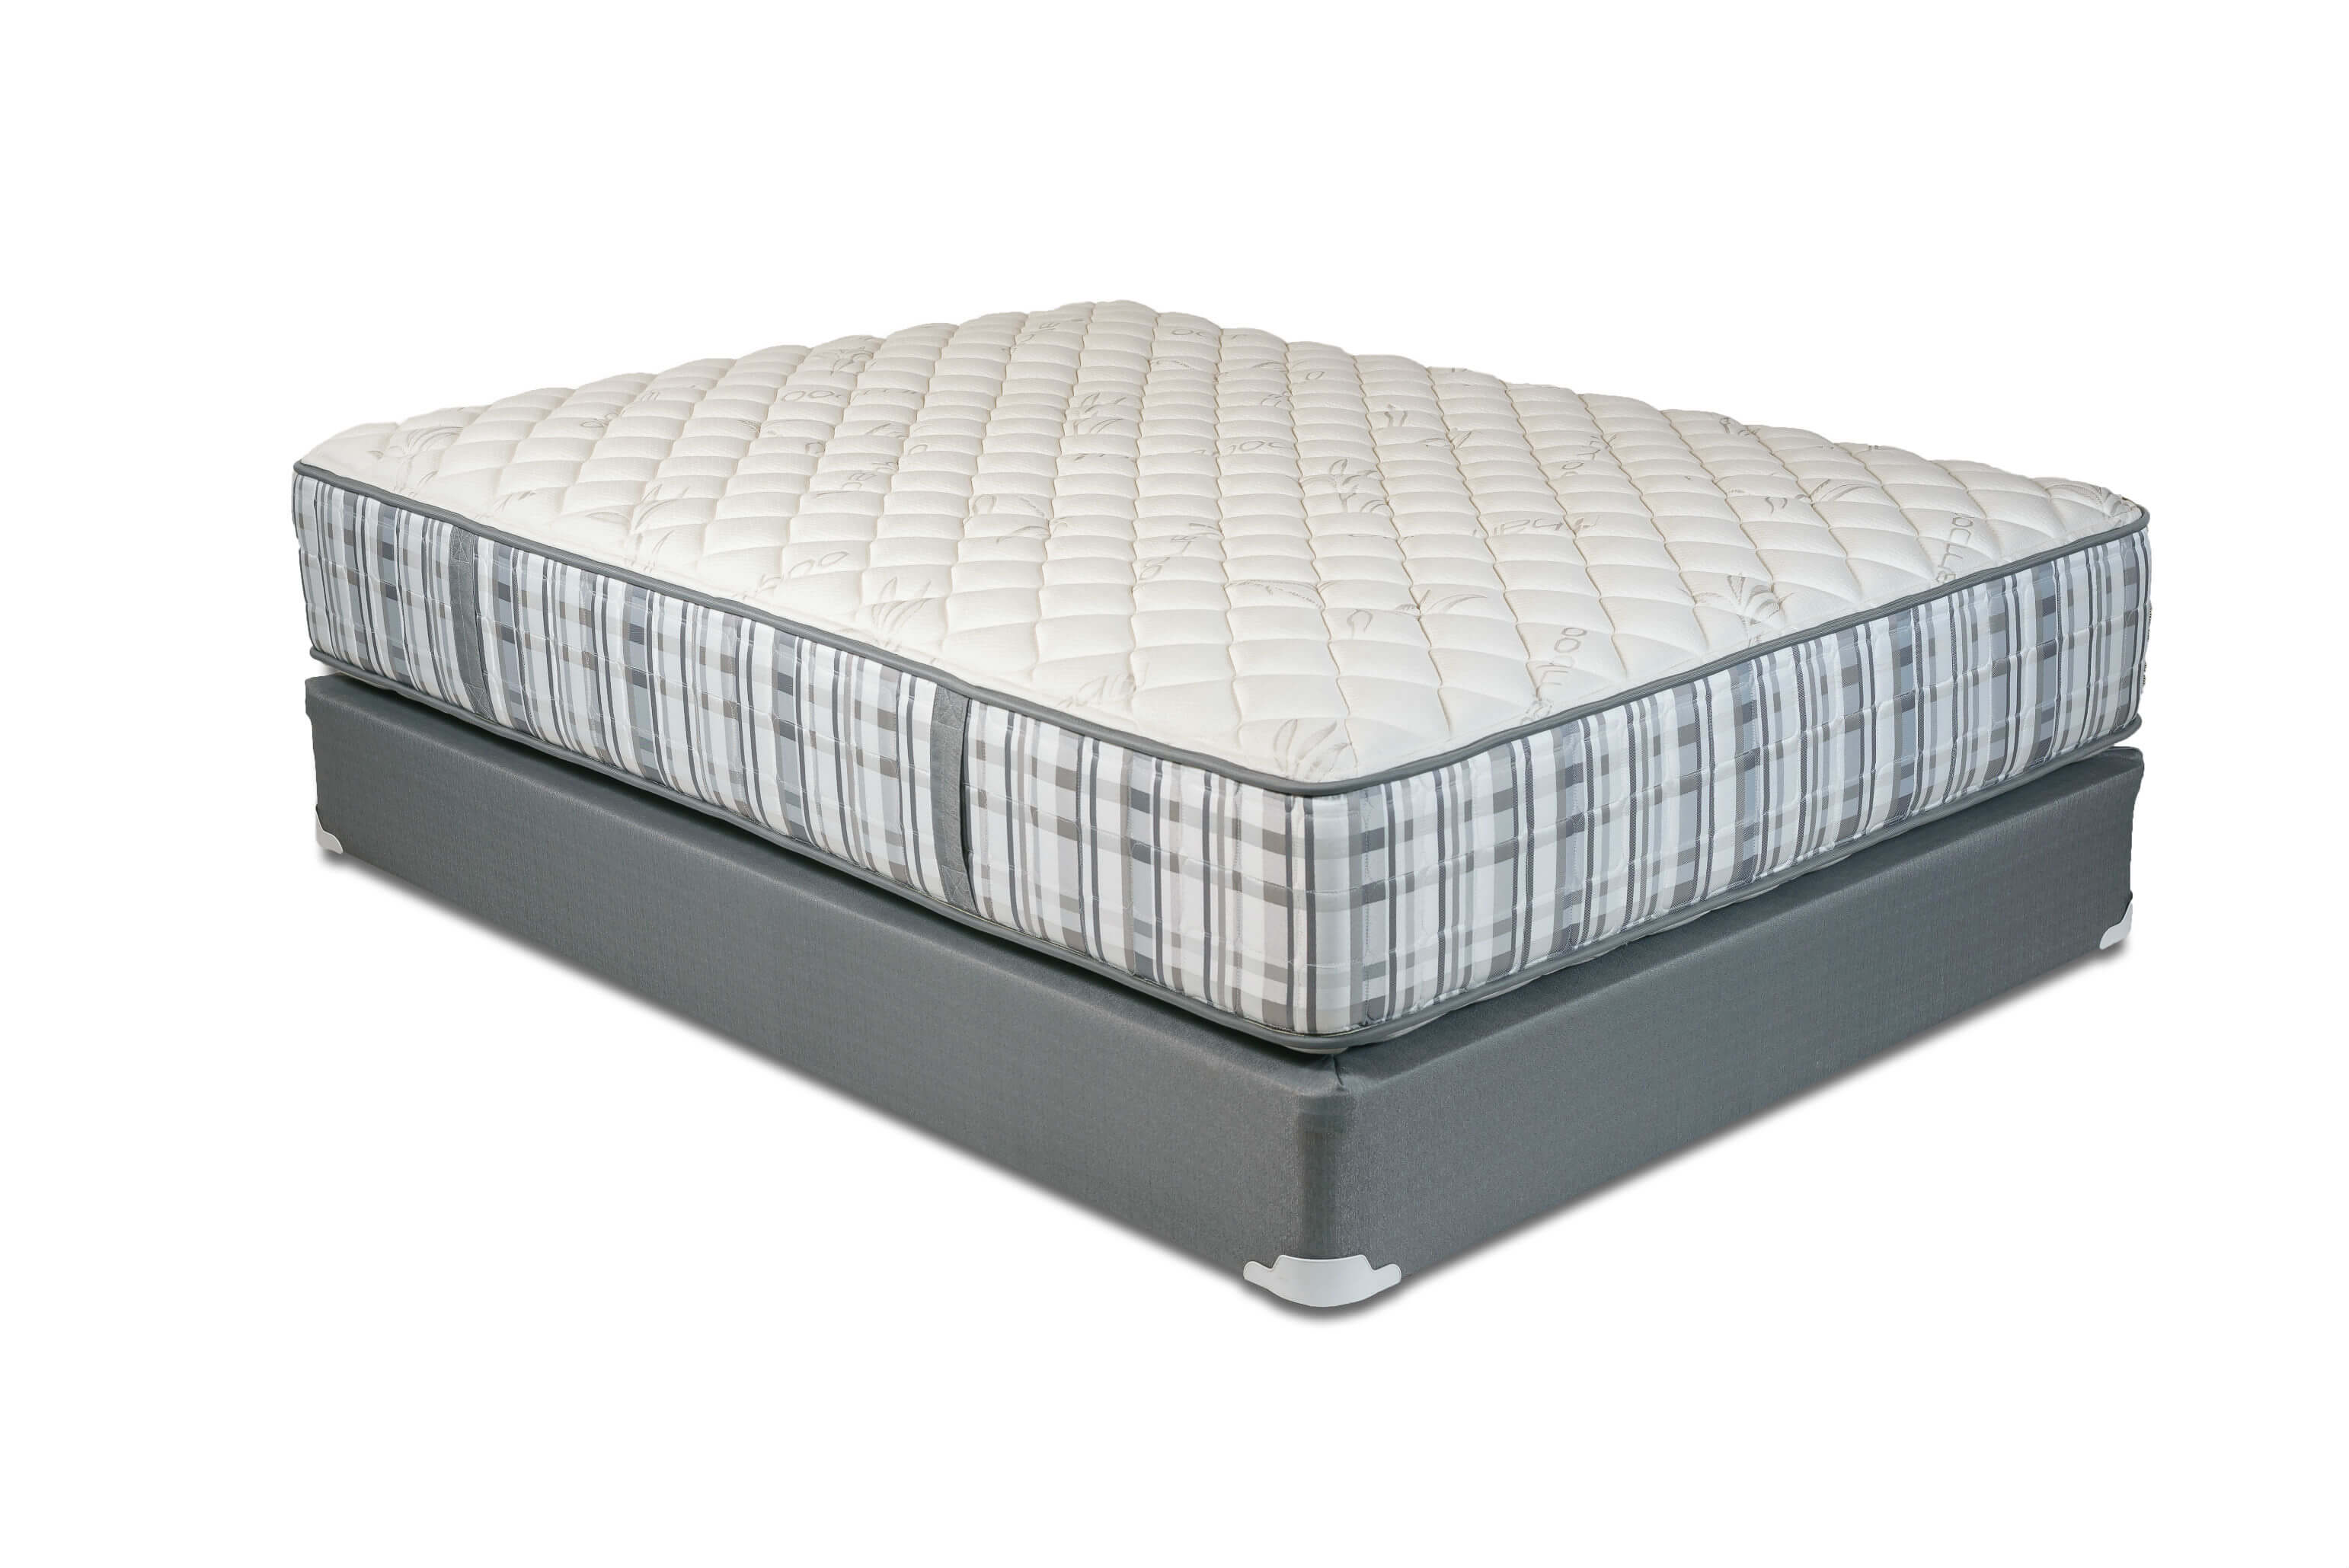 Carkeek innerspring mattress by oregon mattress company for Which mattress company is the best